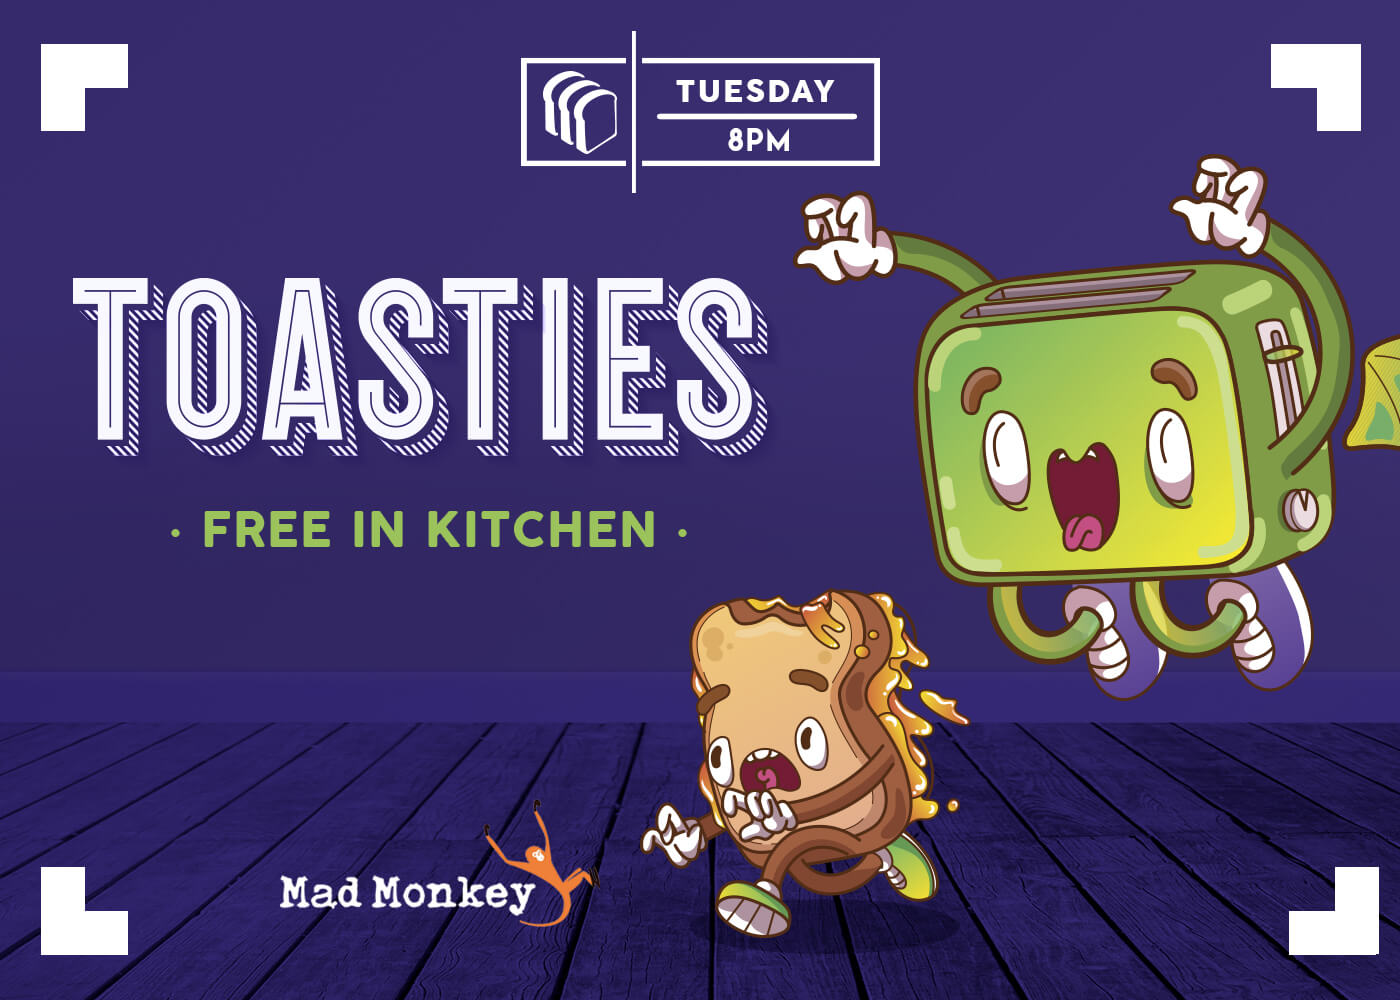 free-events-toasties-tuesday-product-image